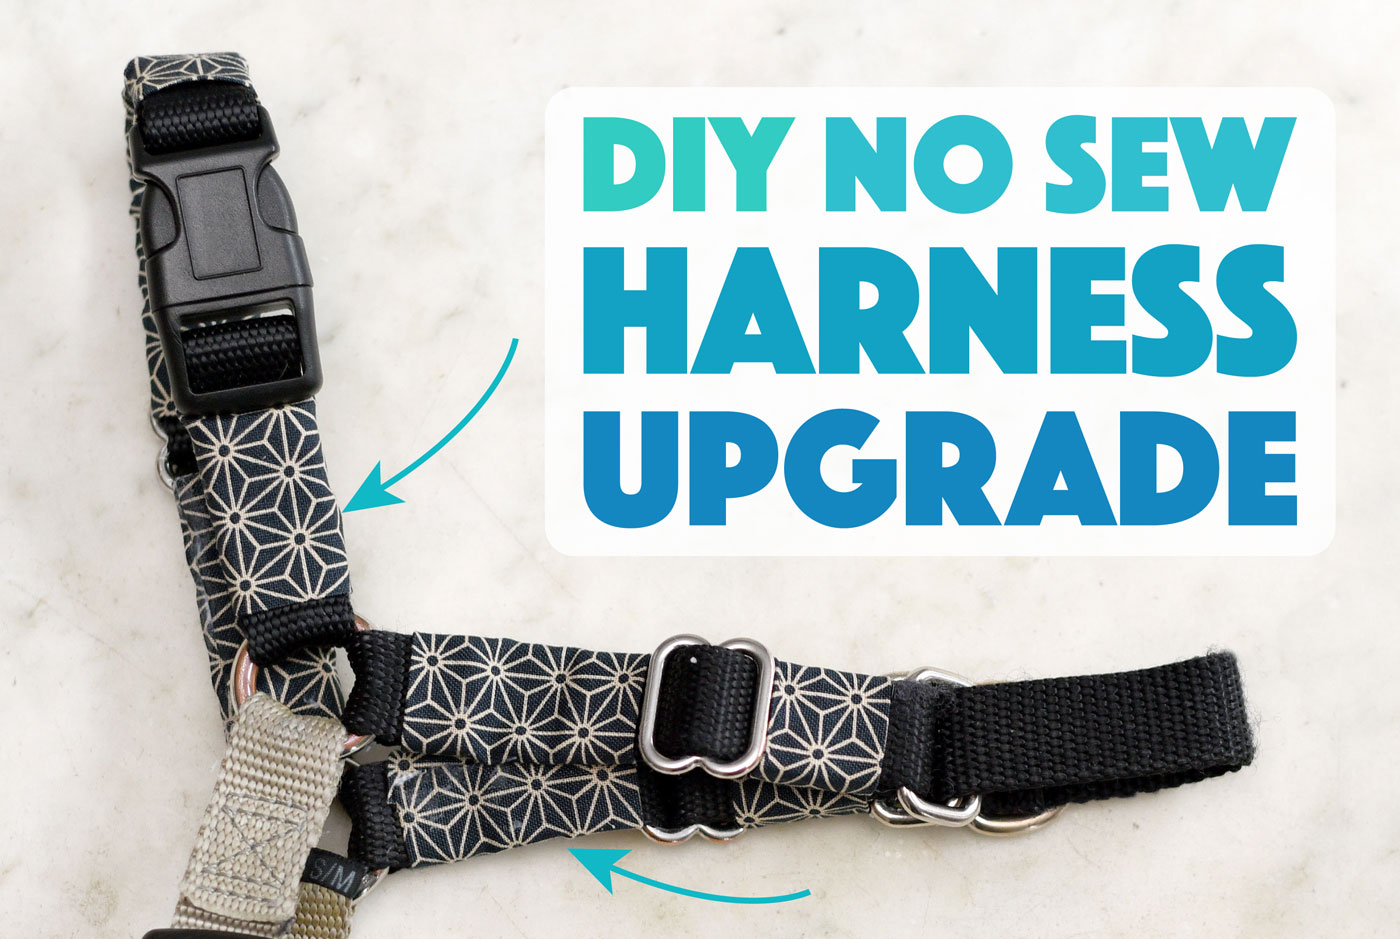 diy dog harness no new upgrade coveR?fit\=1400%2C939\&ssl\=1 diy dog harness diy dog backpack \u2022 wiring diagram database  at alyssarenee.co